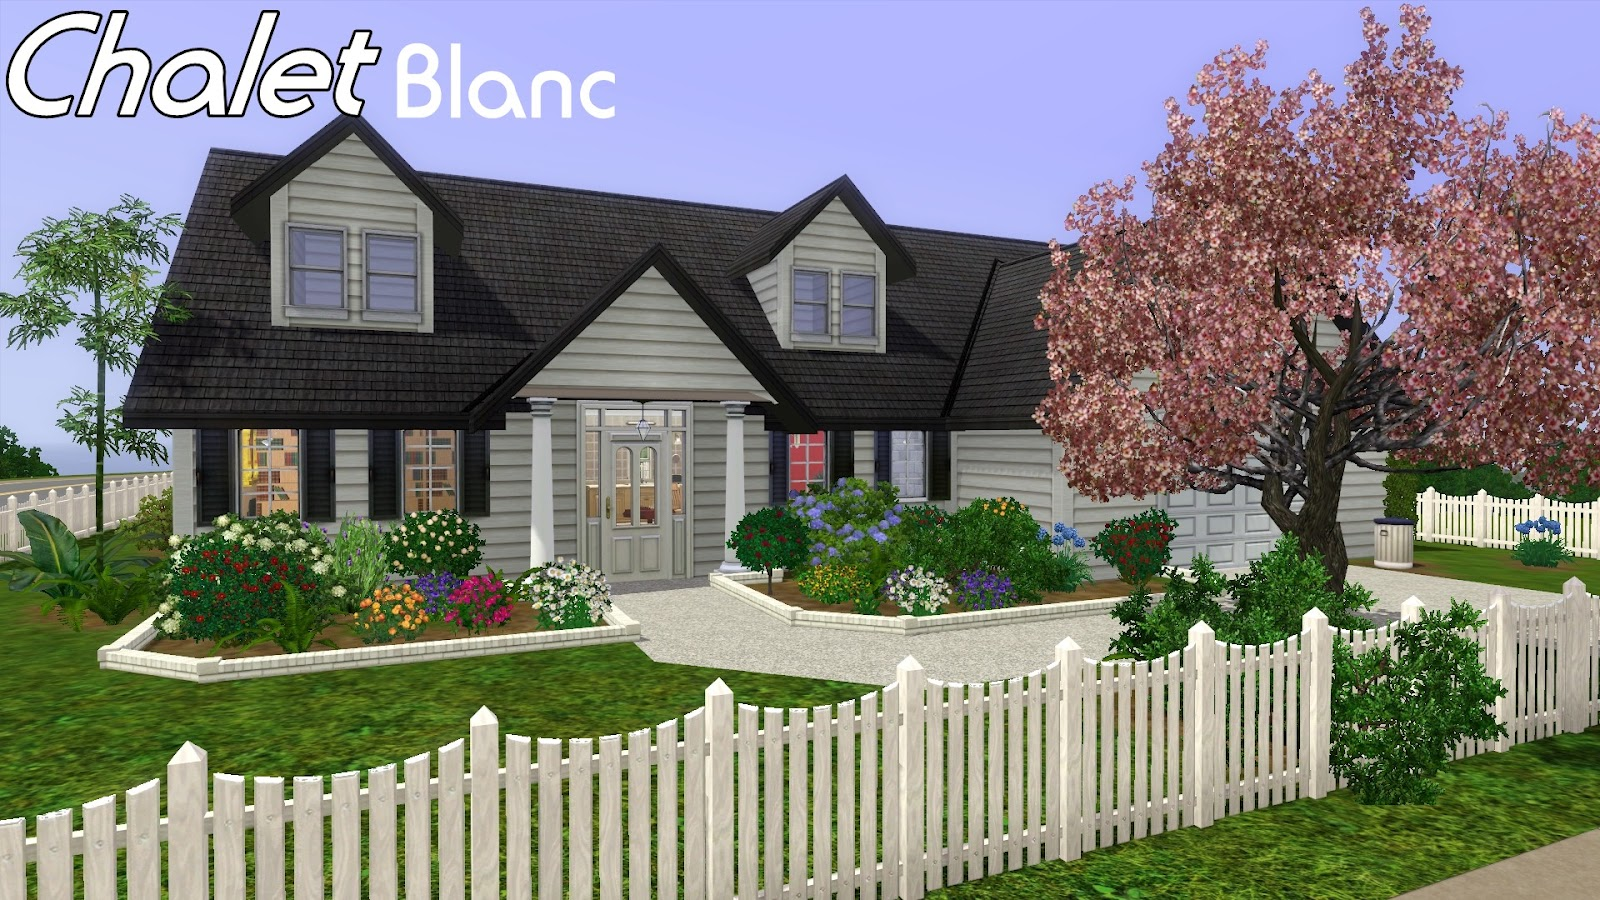 Sims 3 houses chalet blanc august 2012 for Minimalist house the sims 3